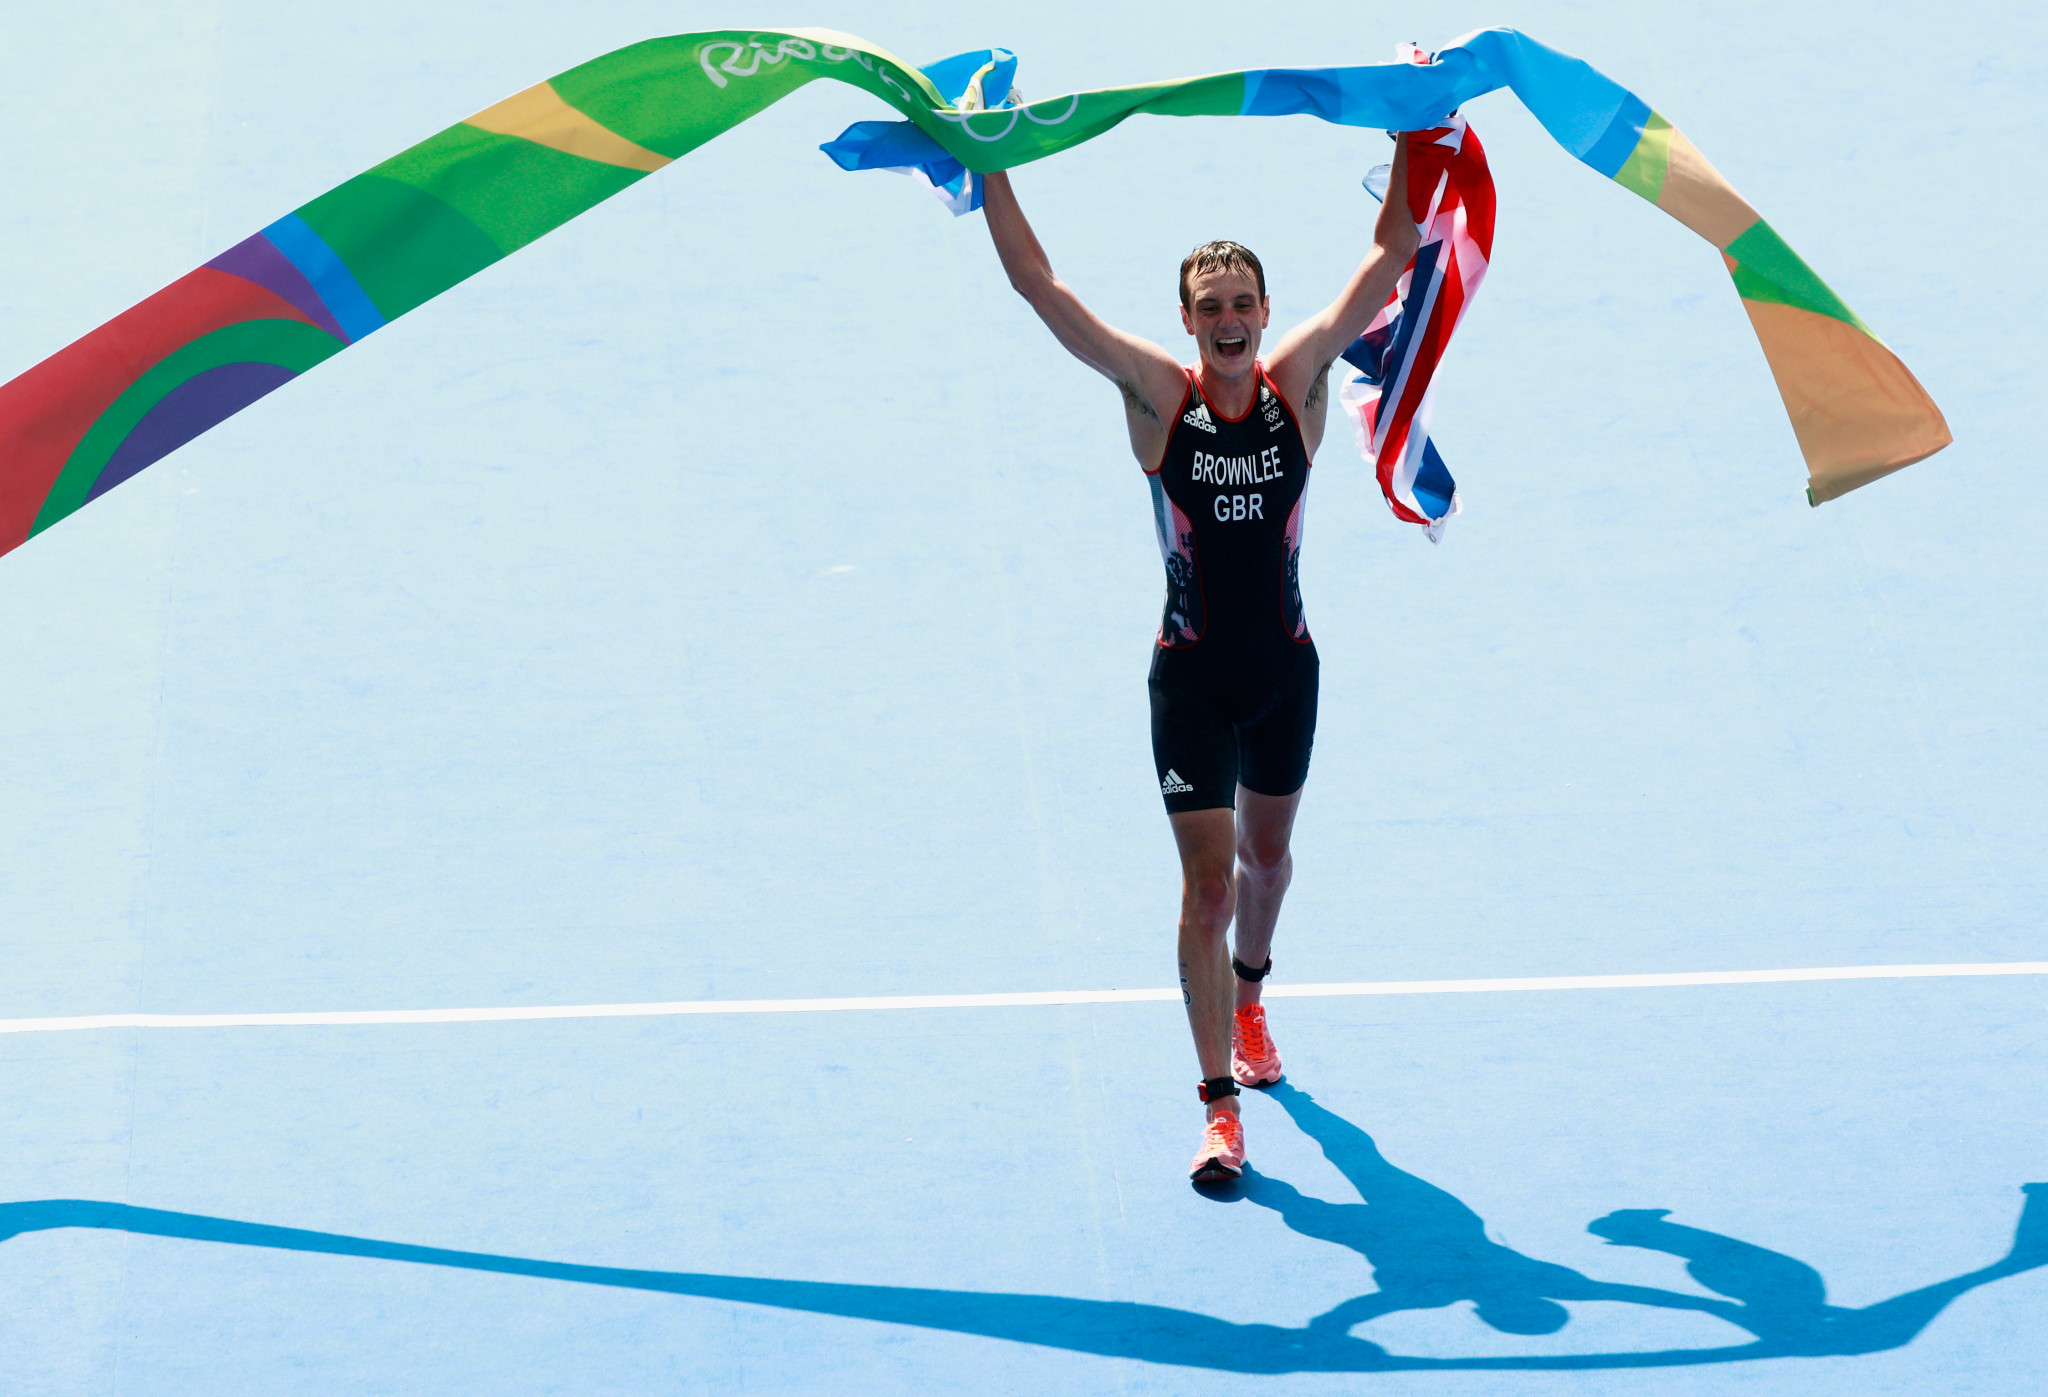 Britain's Alistair Brownlee celebrates winning a second consecutive Olympic gold medal in the triathlon at Rio 2016 - he has not yet decided whether he will attempt to win a third at Tokyo 2020 ©Getty Images